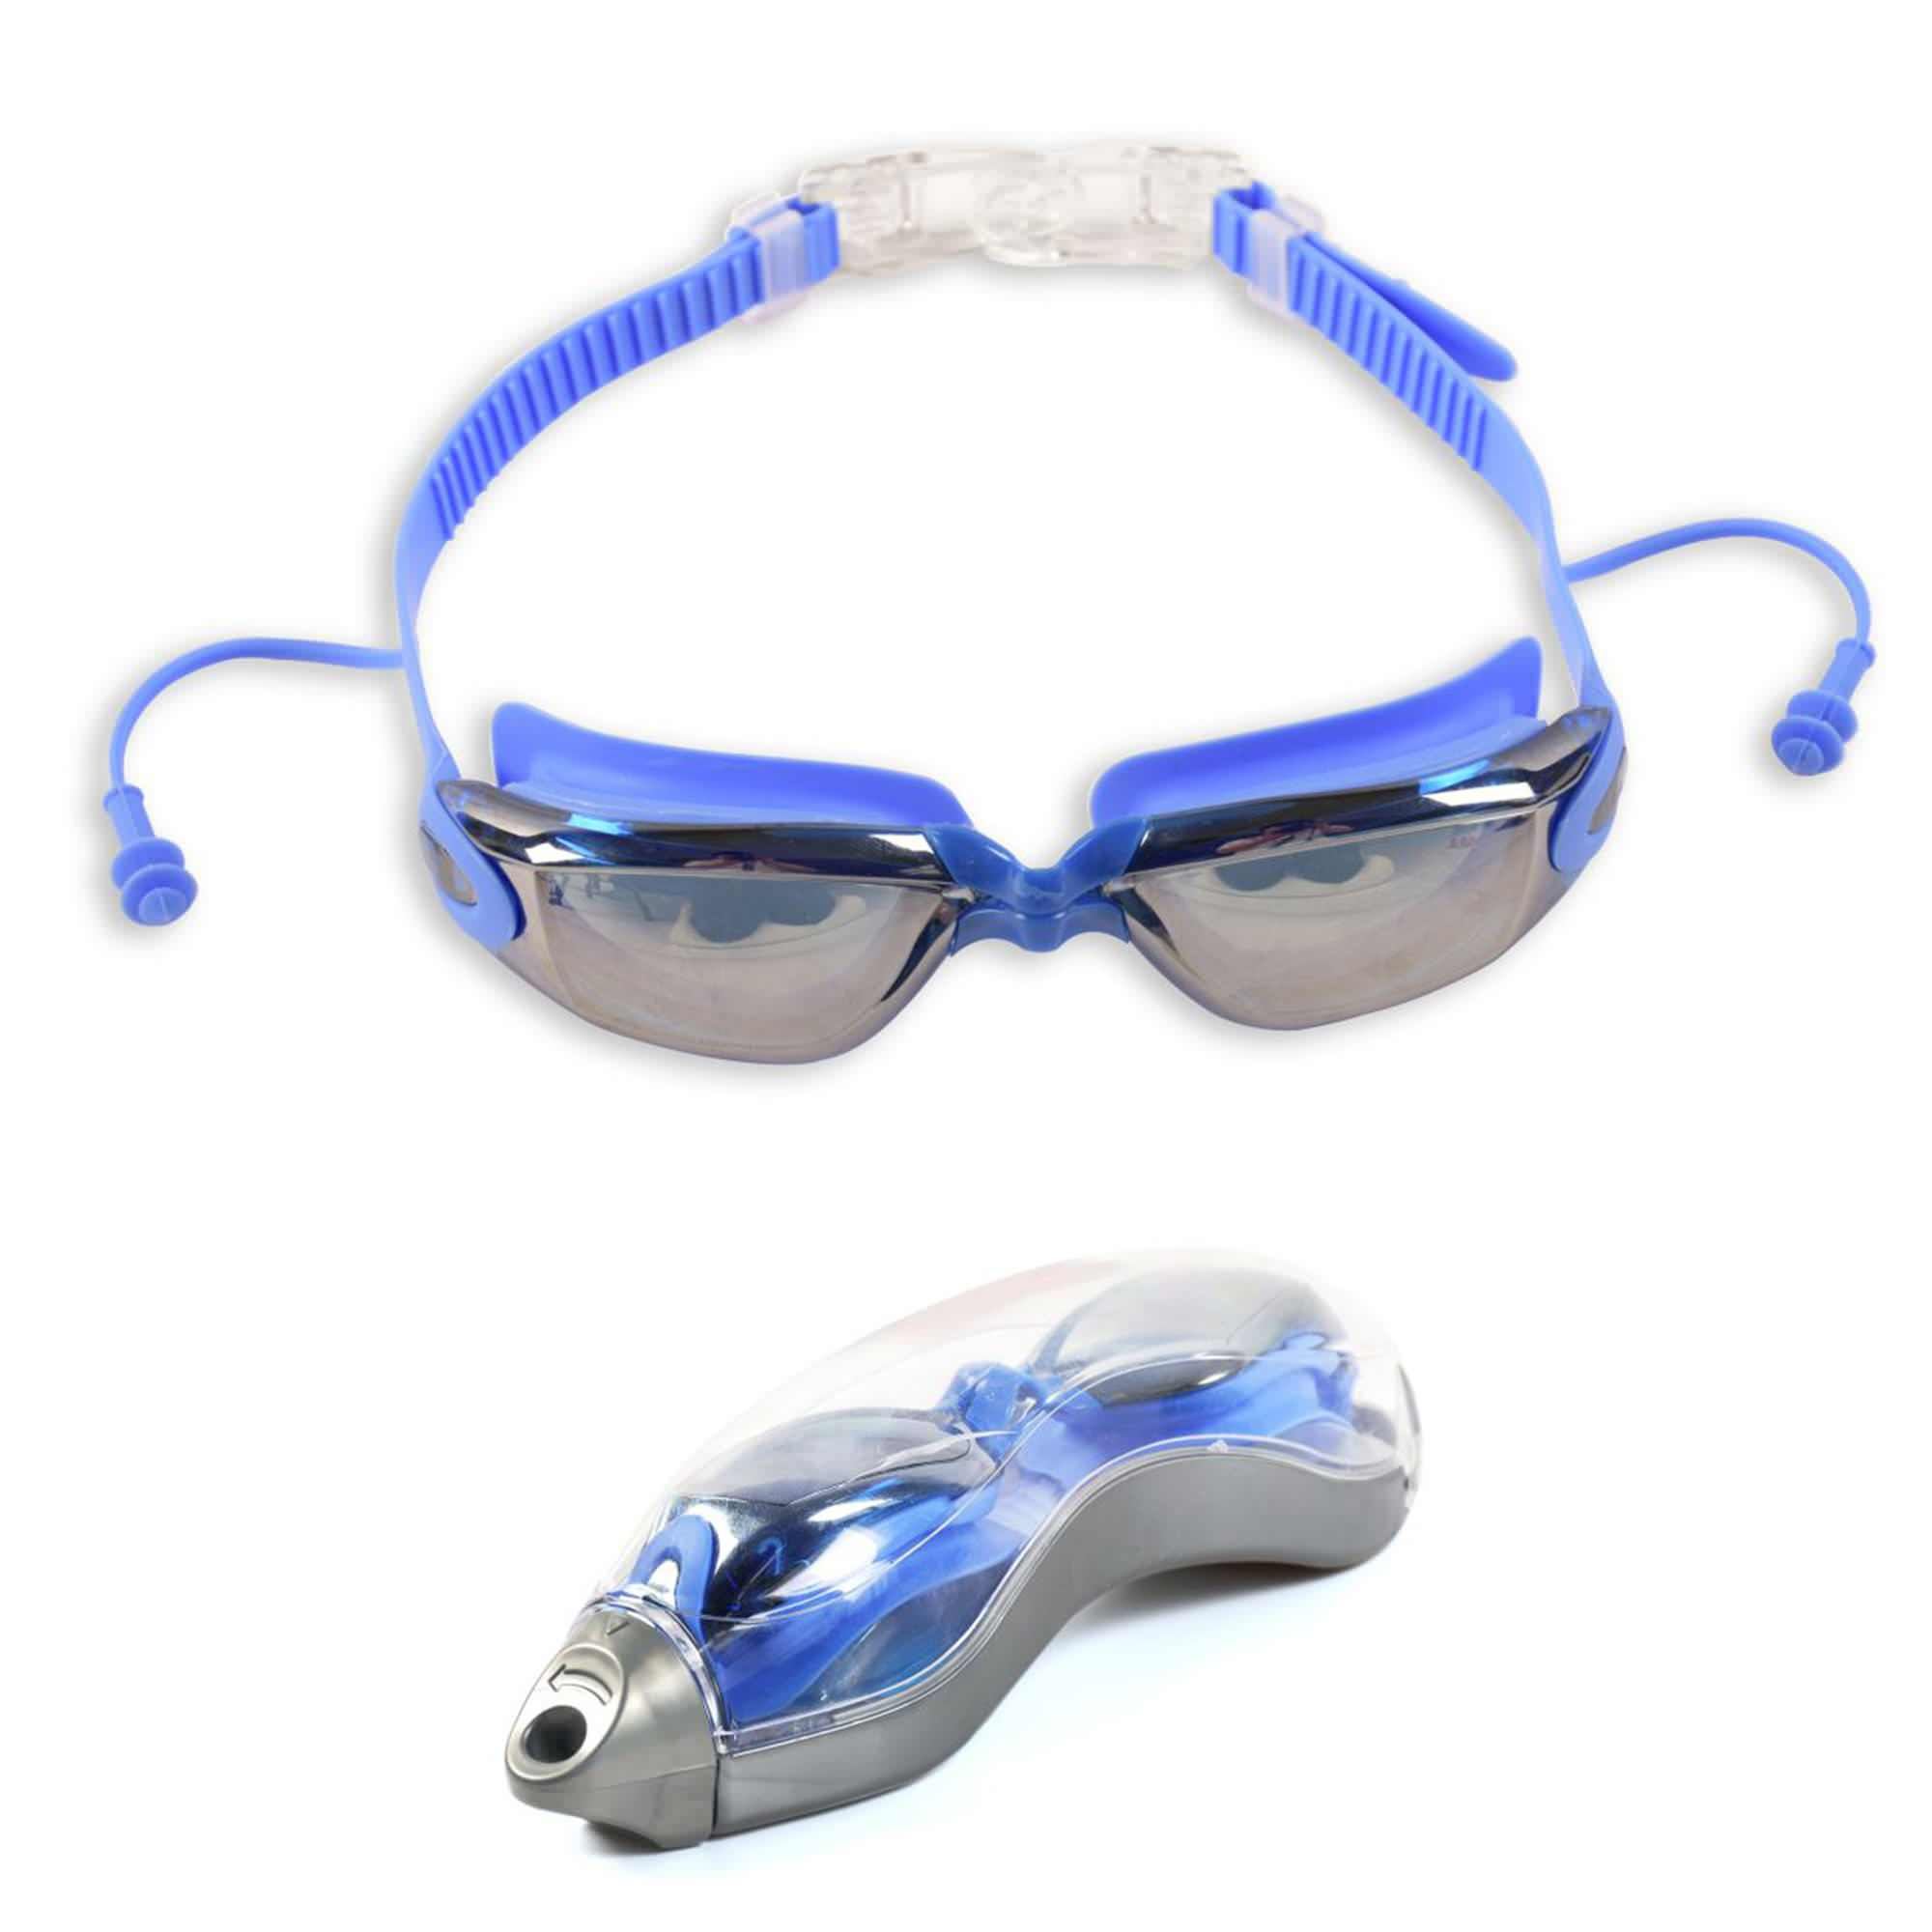 Tree-on-Life Unisex Anti Fog UV Protection Triathlon Swim Swimming Goggles No Leaking with Free Protection Case for Adult Child